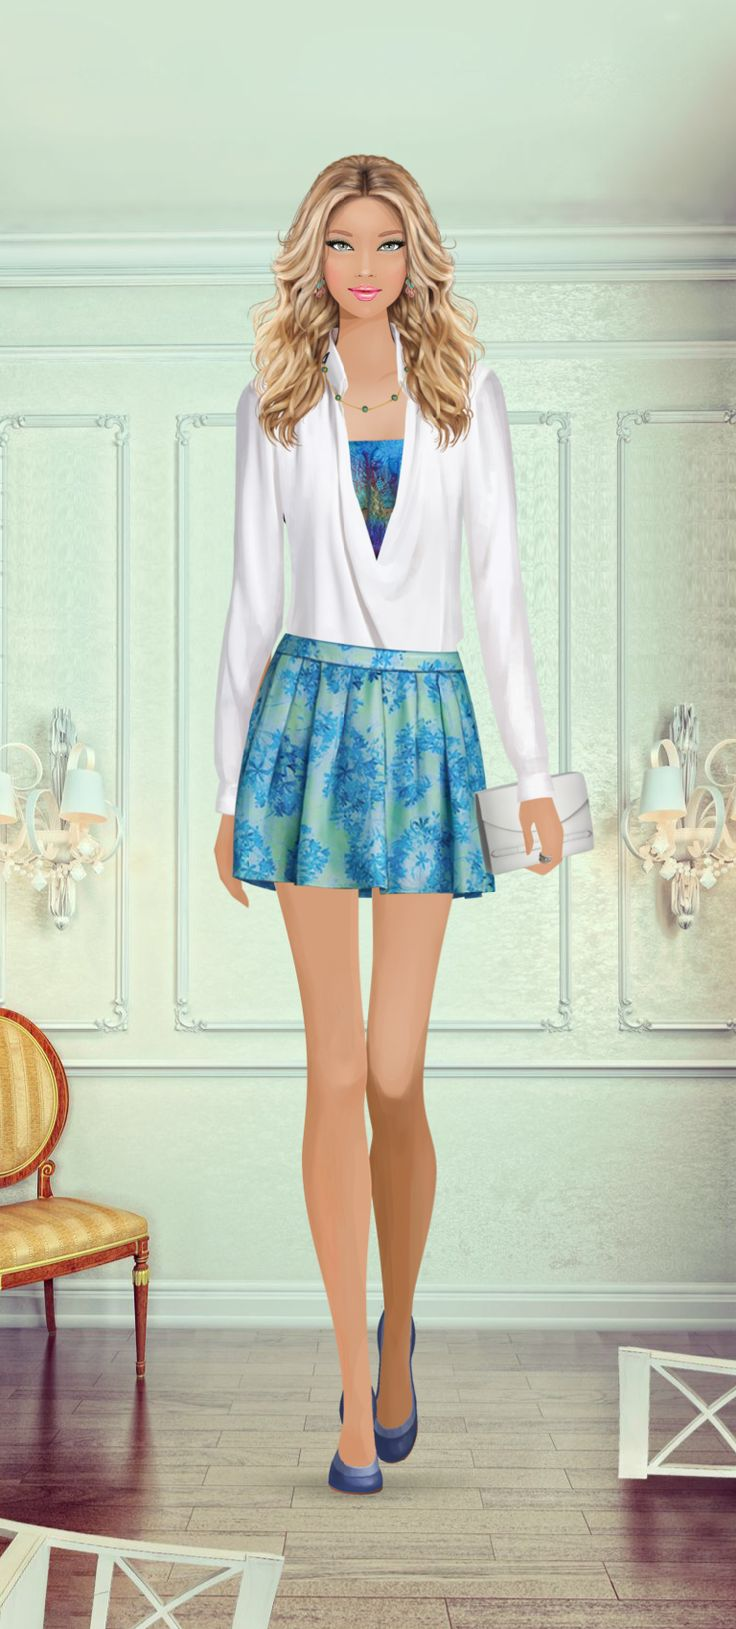 Alice In Wonderland Event On Covet Fashion Game Covet